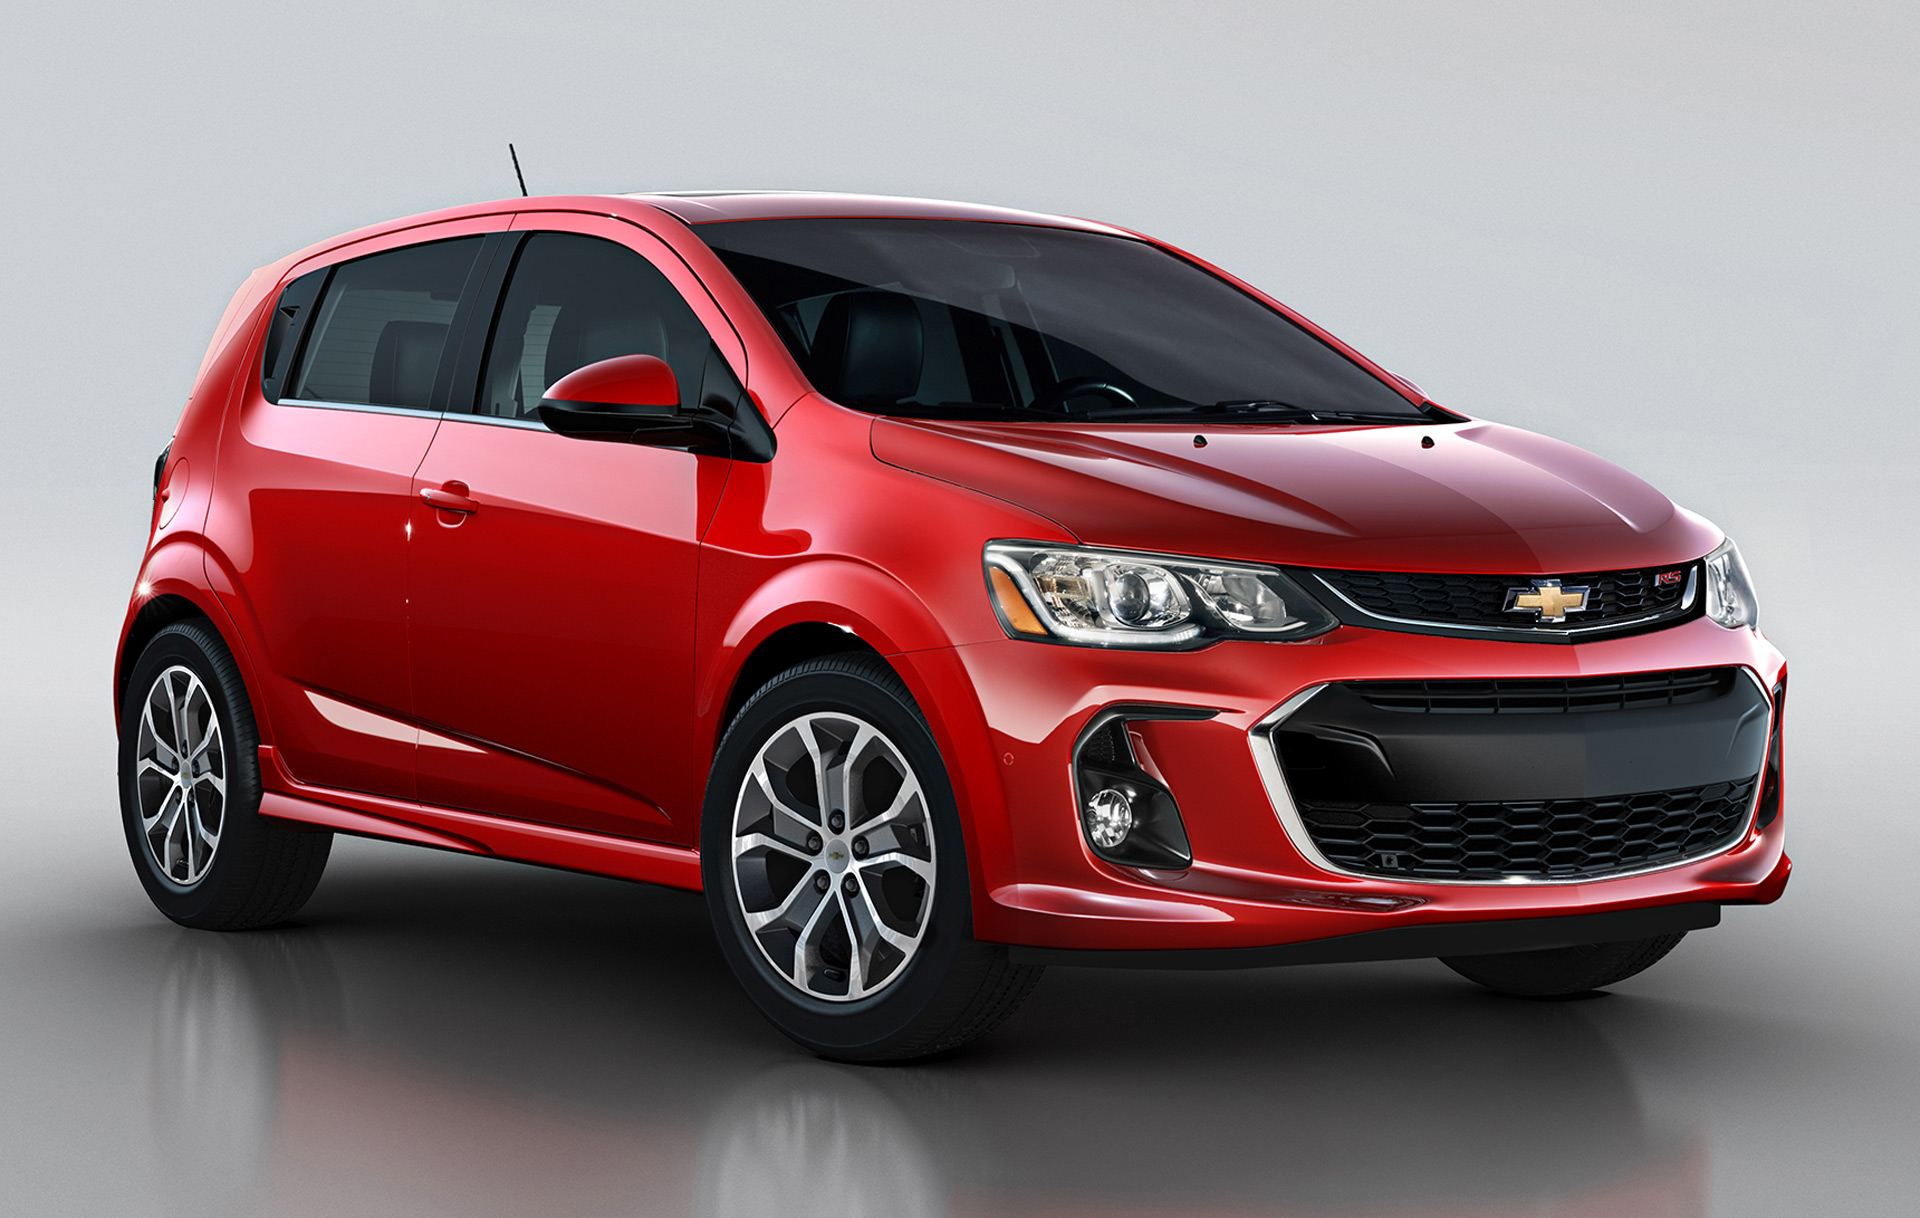 2017 chevrolet sonic updated with carplay new styling - 2017 chevrolet sonic sedan interior ...